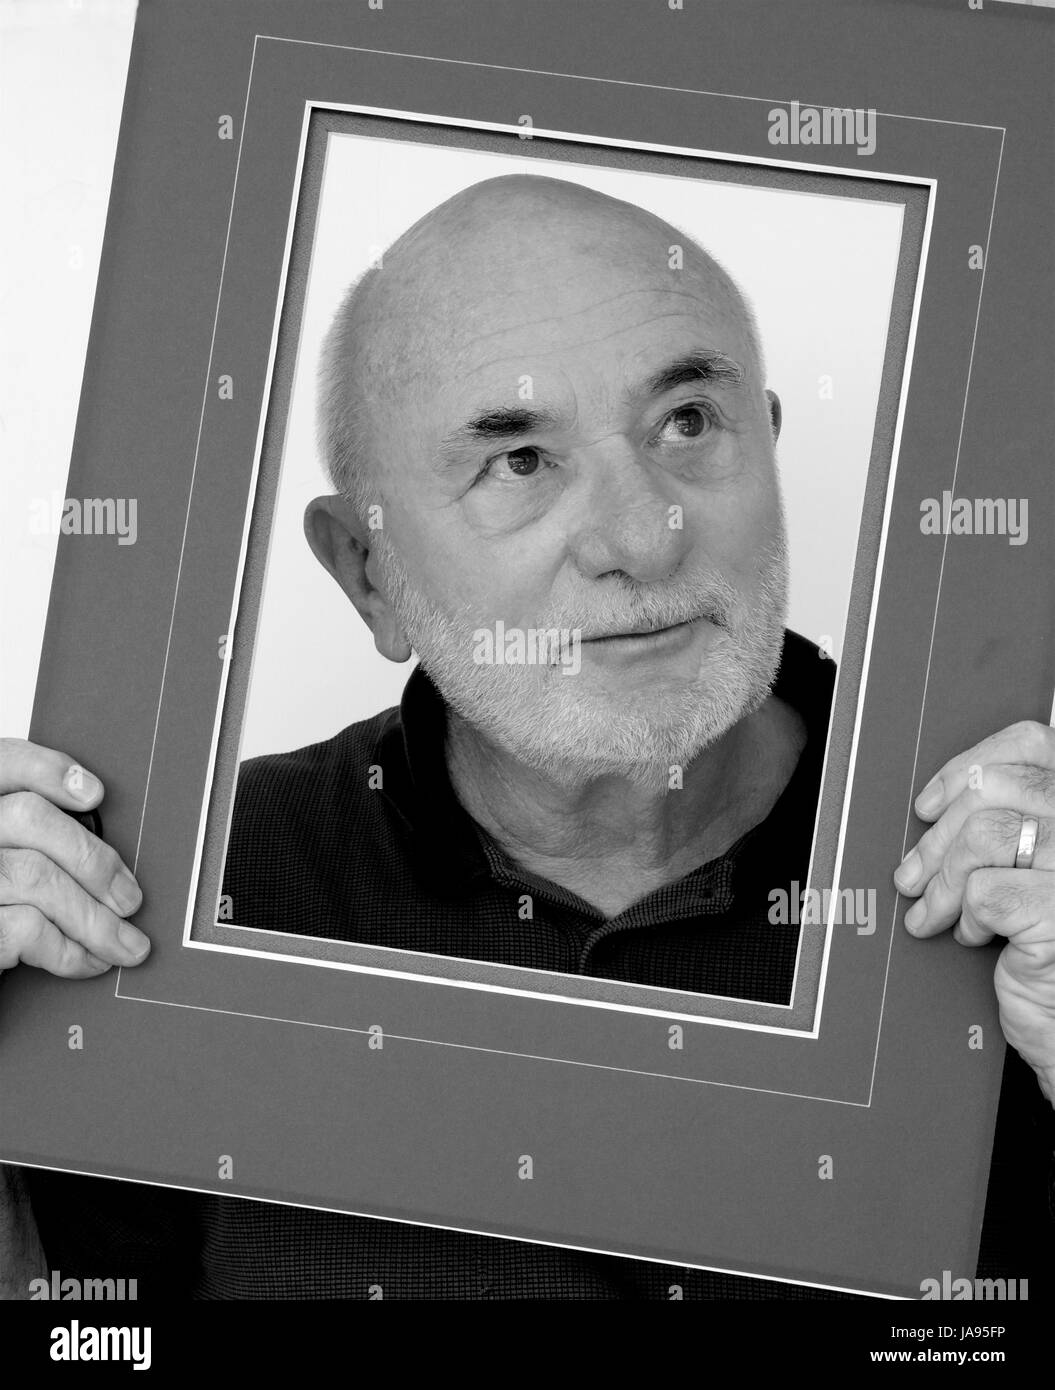 Old man in a picture frame in black and white. - Stock Image